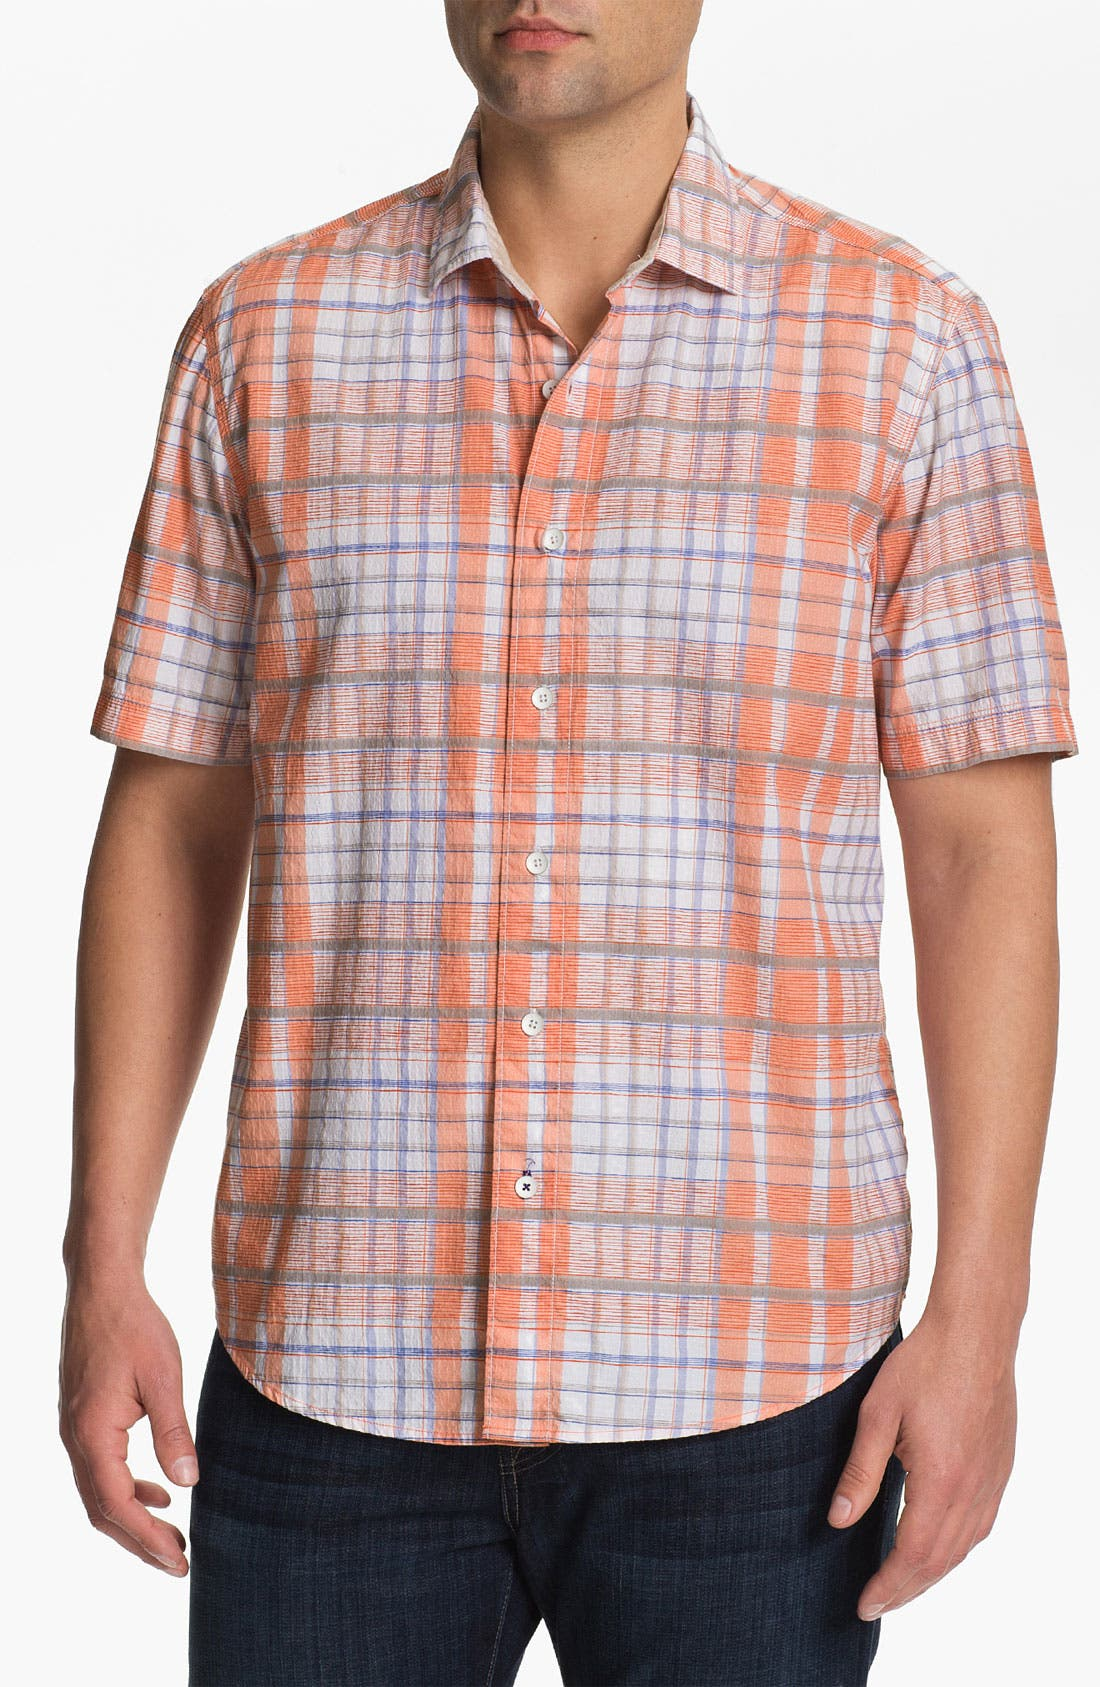 Alternate Image 1 Selected - Tommy Bahama 'Plaidlantic' Regular Fit Short Sleeve Sport Shirt